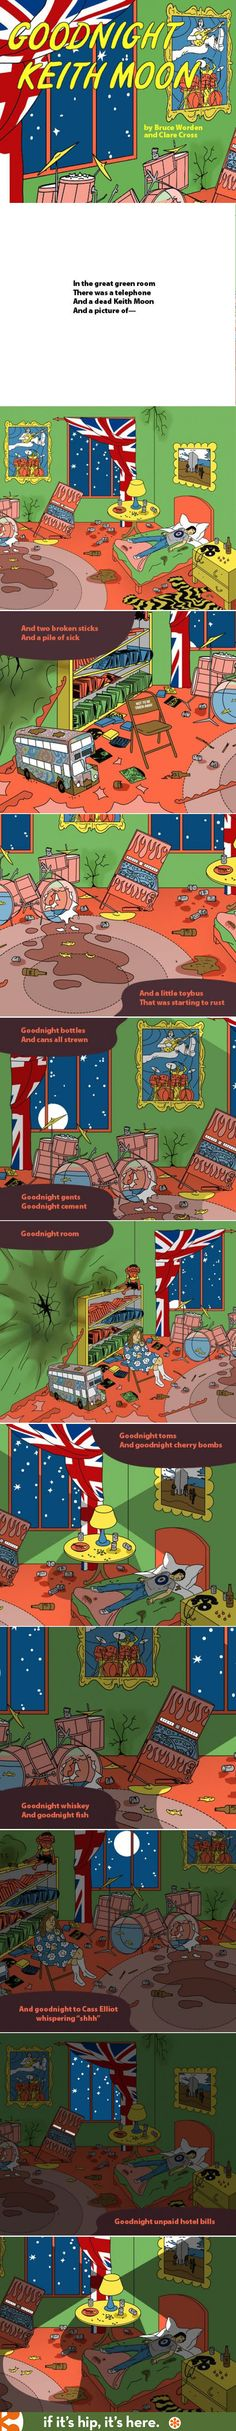 Goodnight Keith Moon. A hilarious parody of the children's classic bedtime story.